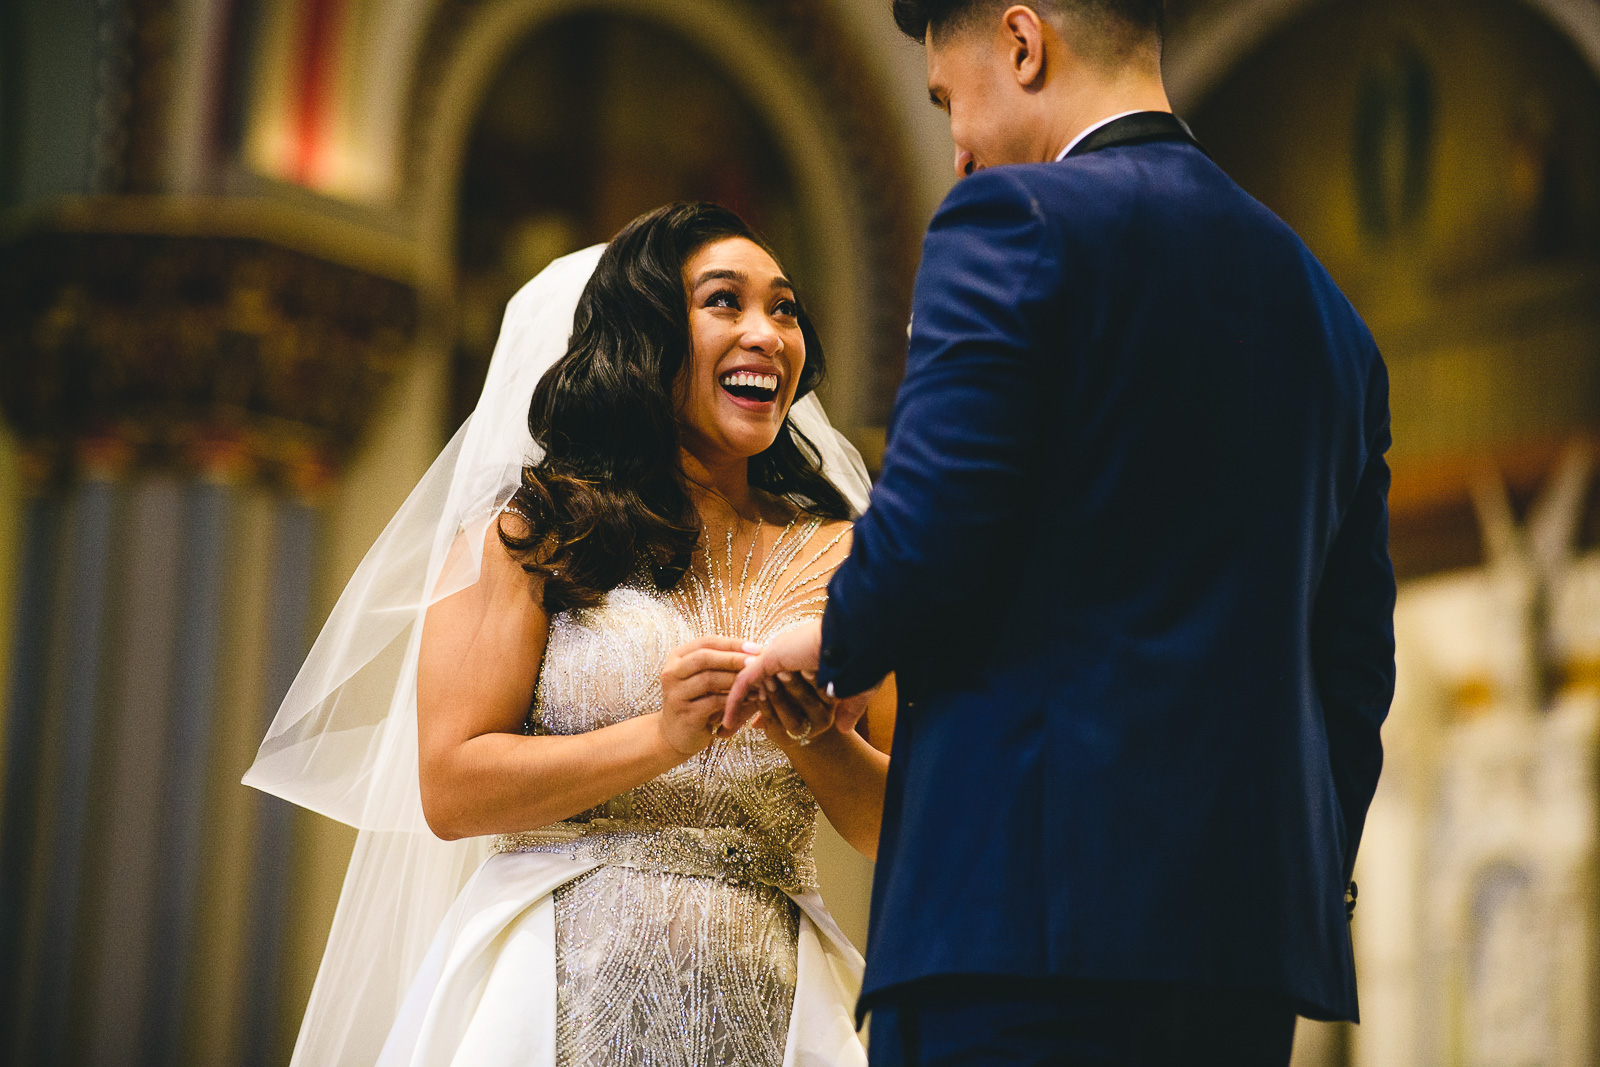 43 renaissance hotel chicago wedding photos - Renaissance Hotel Chicago Wedding Photos // Francine + RJ